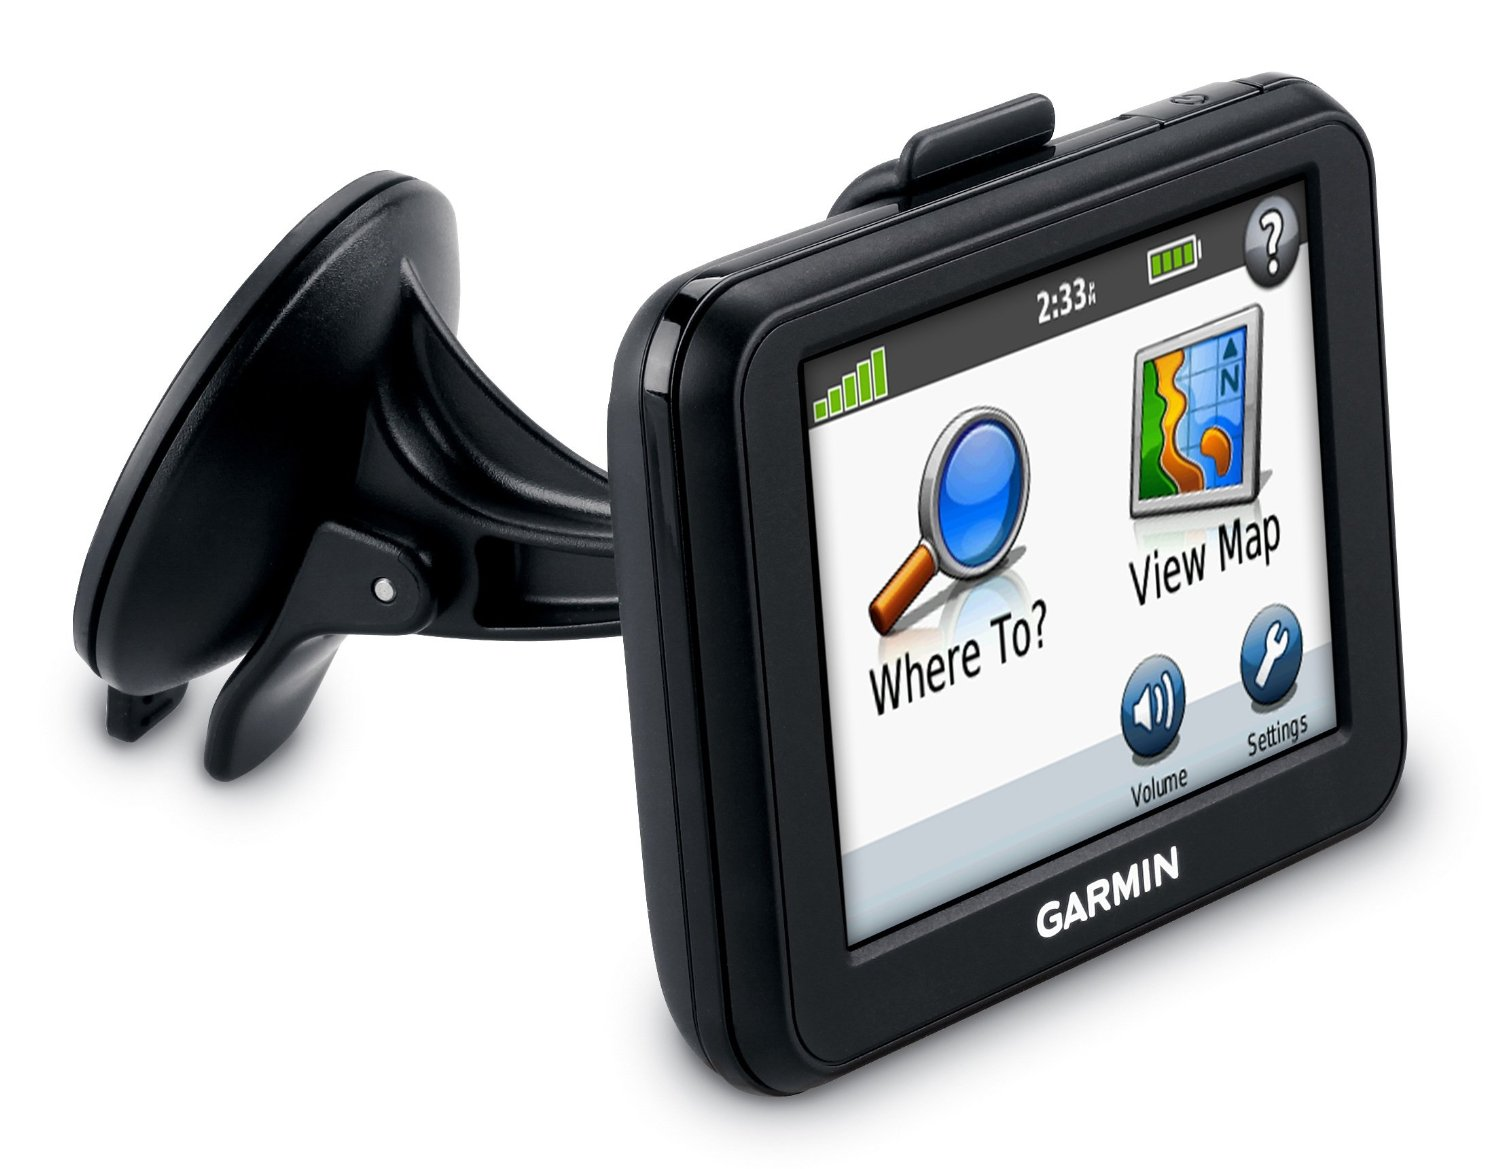 Garmin Gps Navigation : Garmin nuvi gps satnav uk west europe maps lane